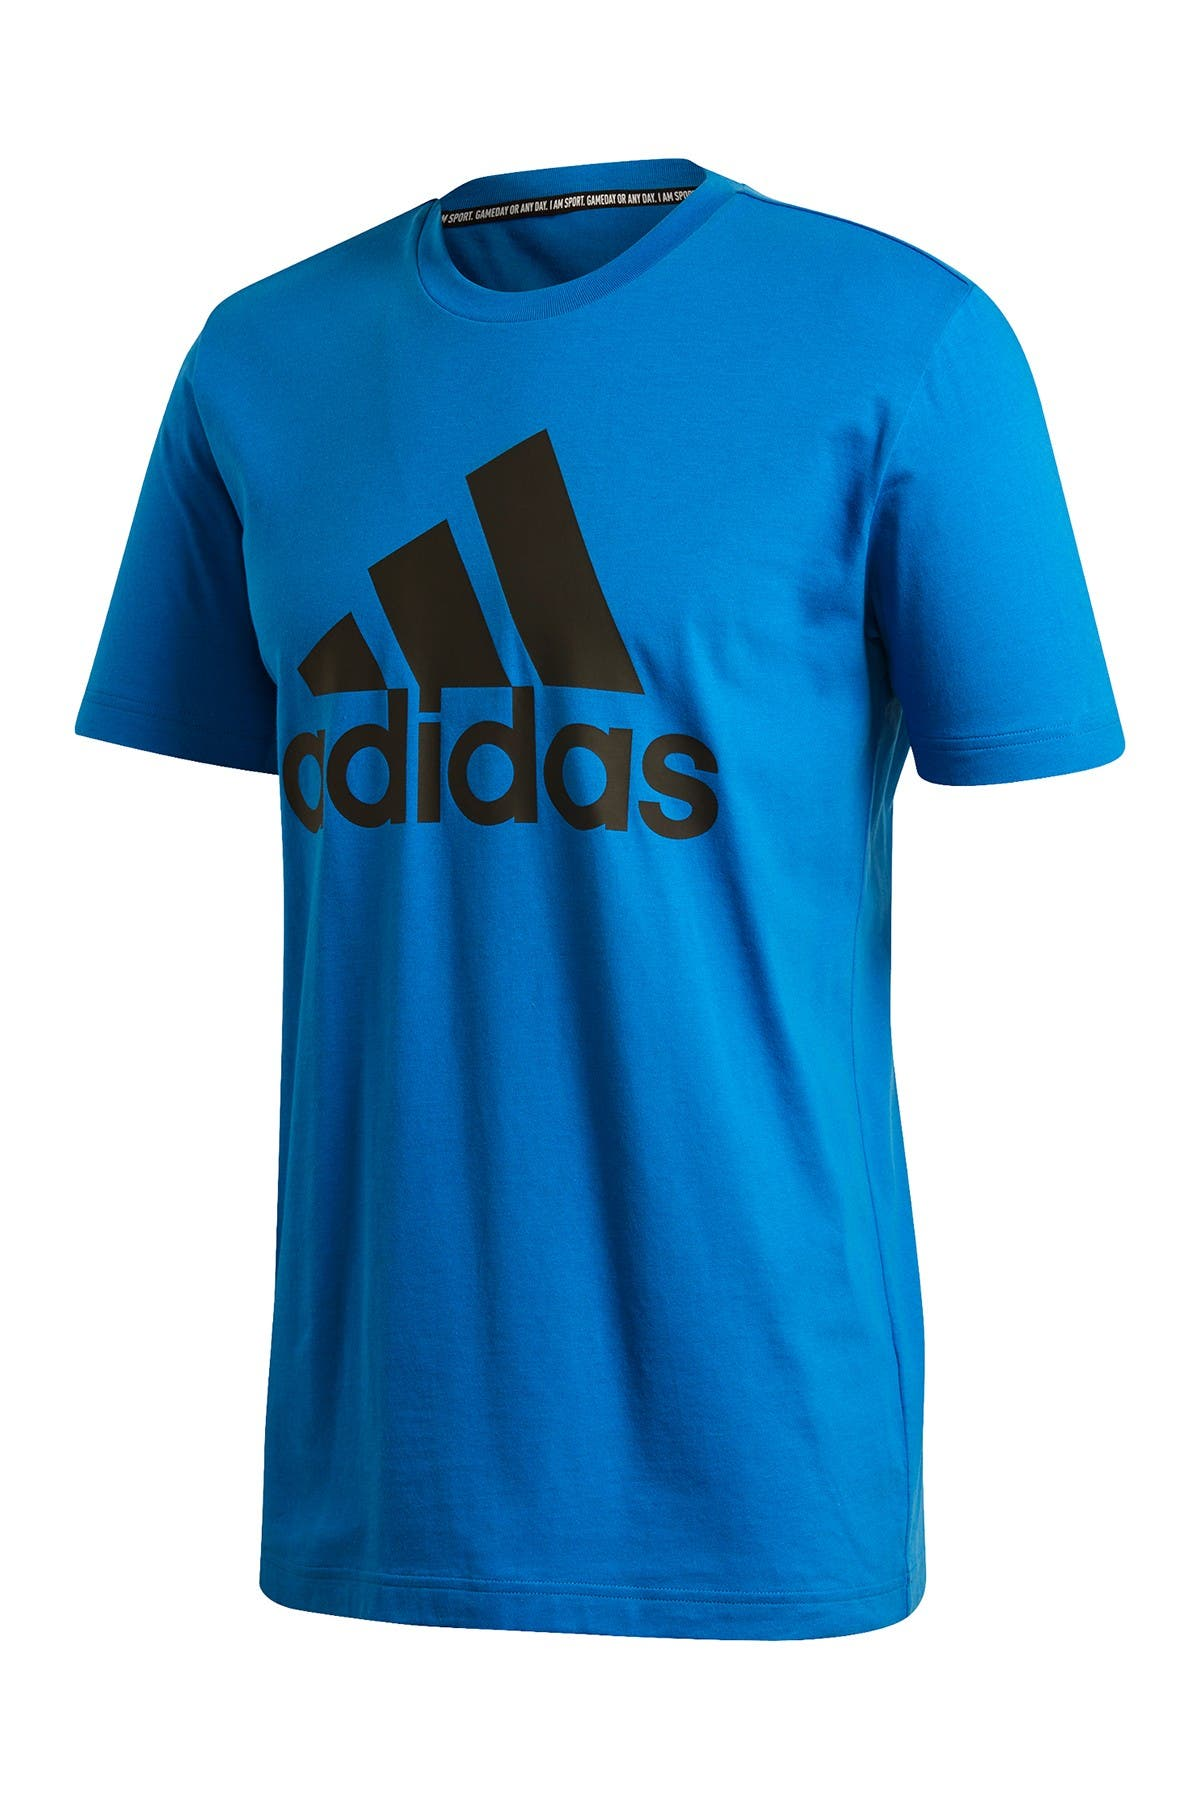 Image of adidas Must Haves Badge of Sport Graphic T-Shirt